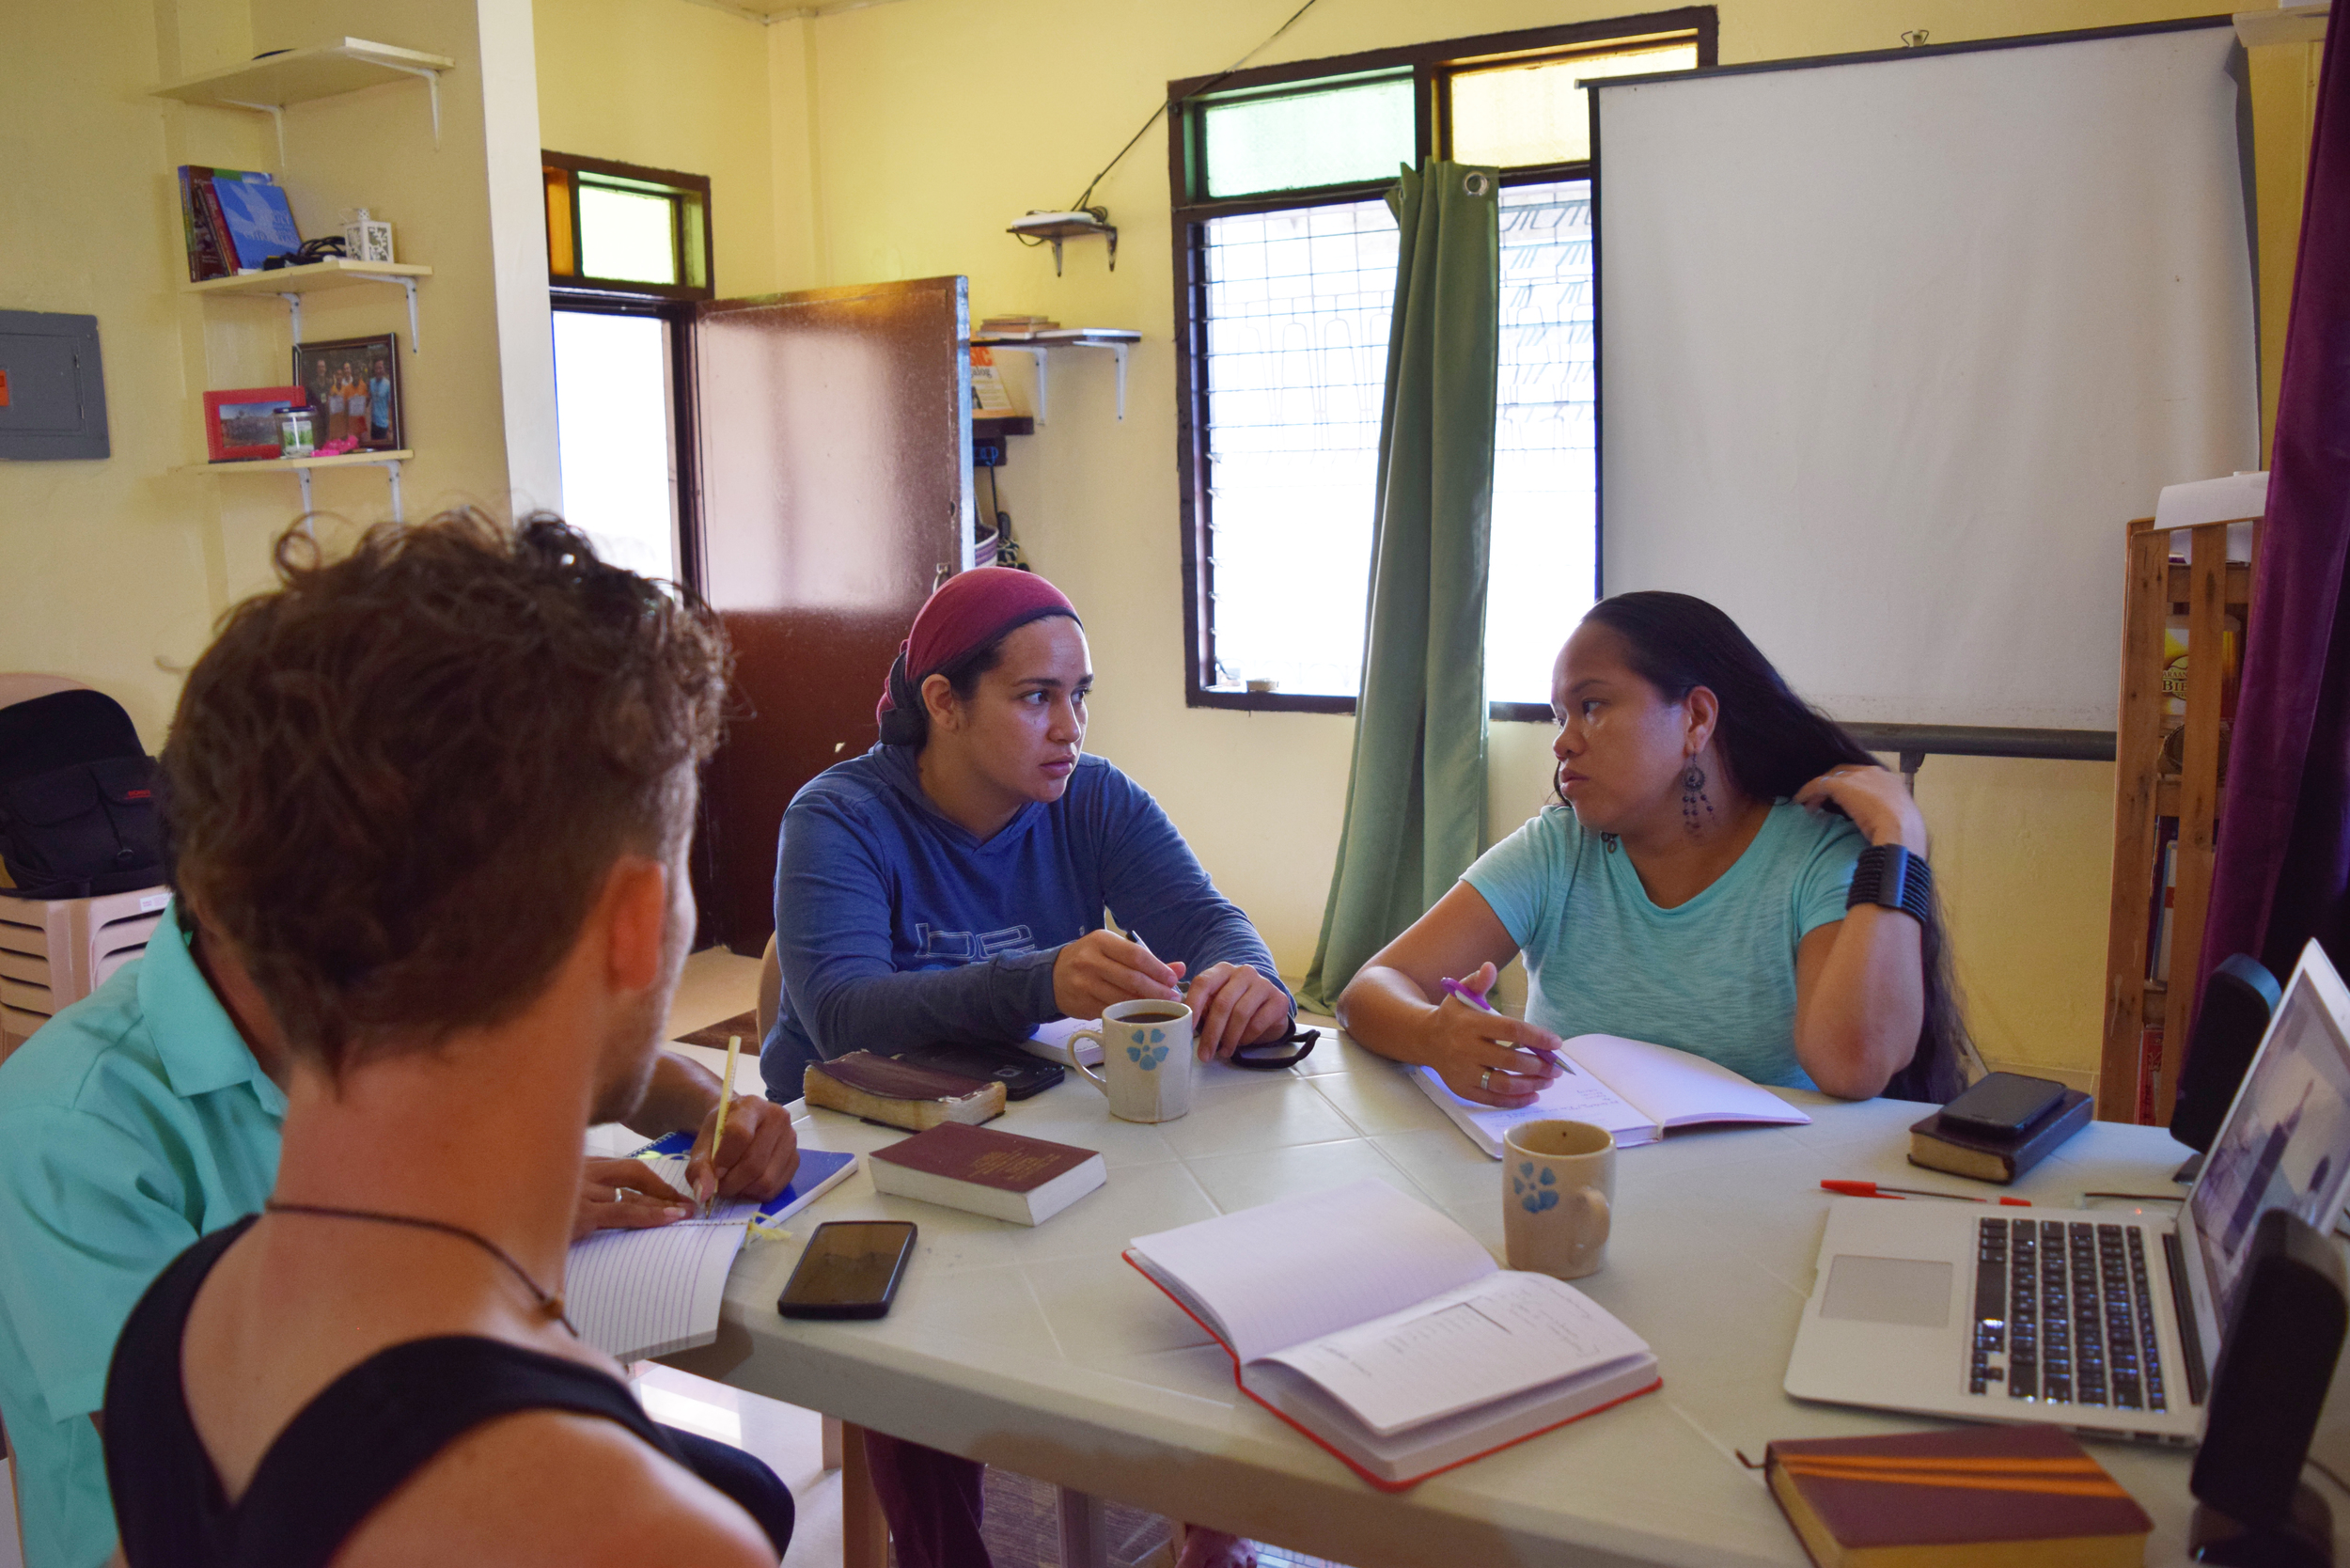 In the Philippines, our development workers Clark and Rina Miller discuss the course content with Leafa Vagatai, who is on a 6-month study abroad.